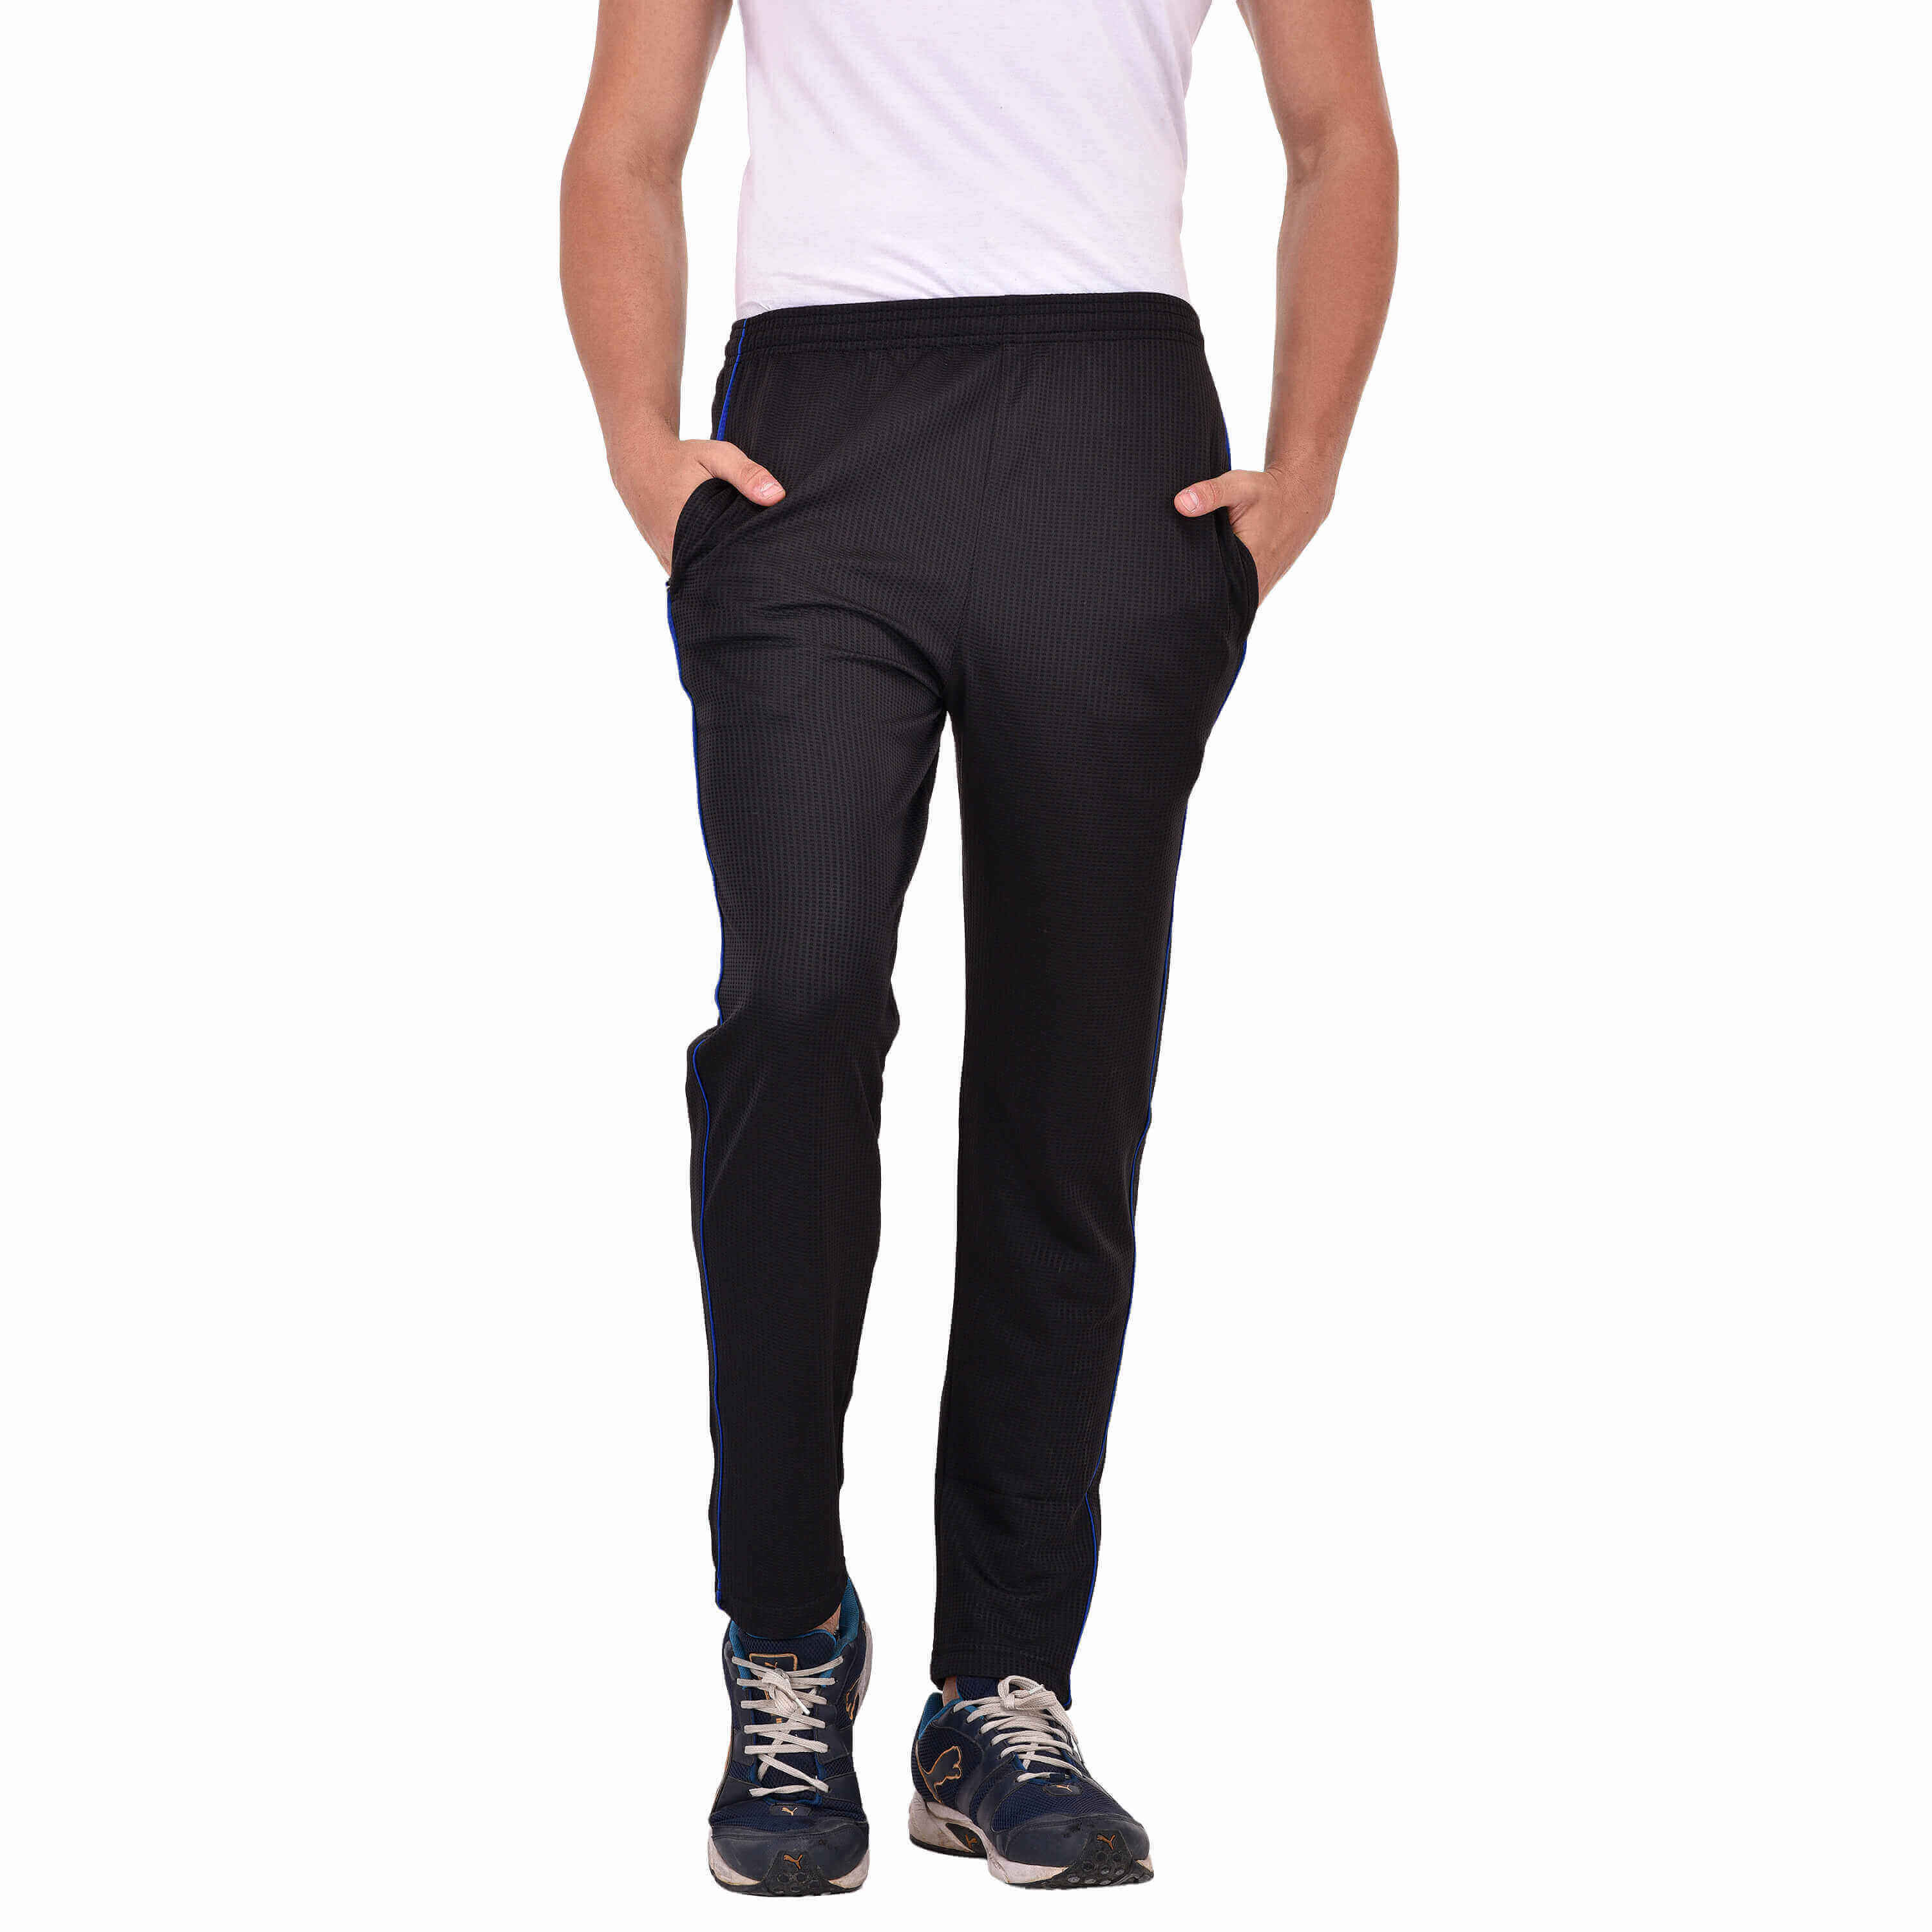 Mens Tracksuit Bottoms Manufacturers in Solapur